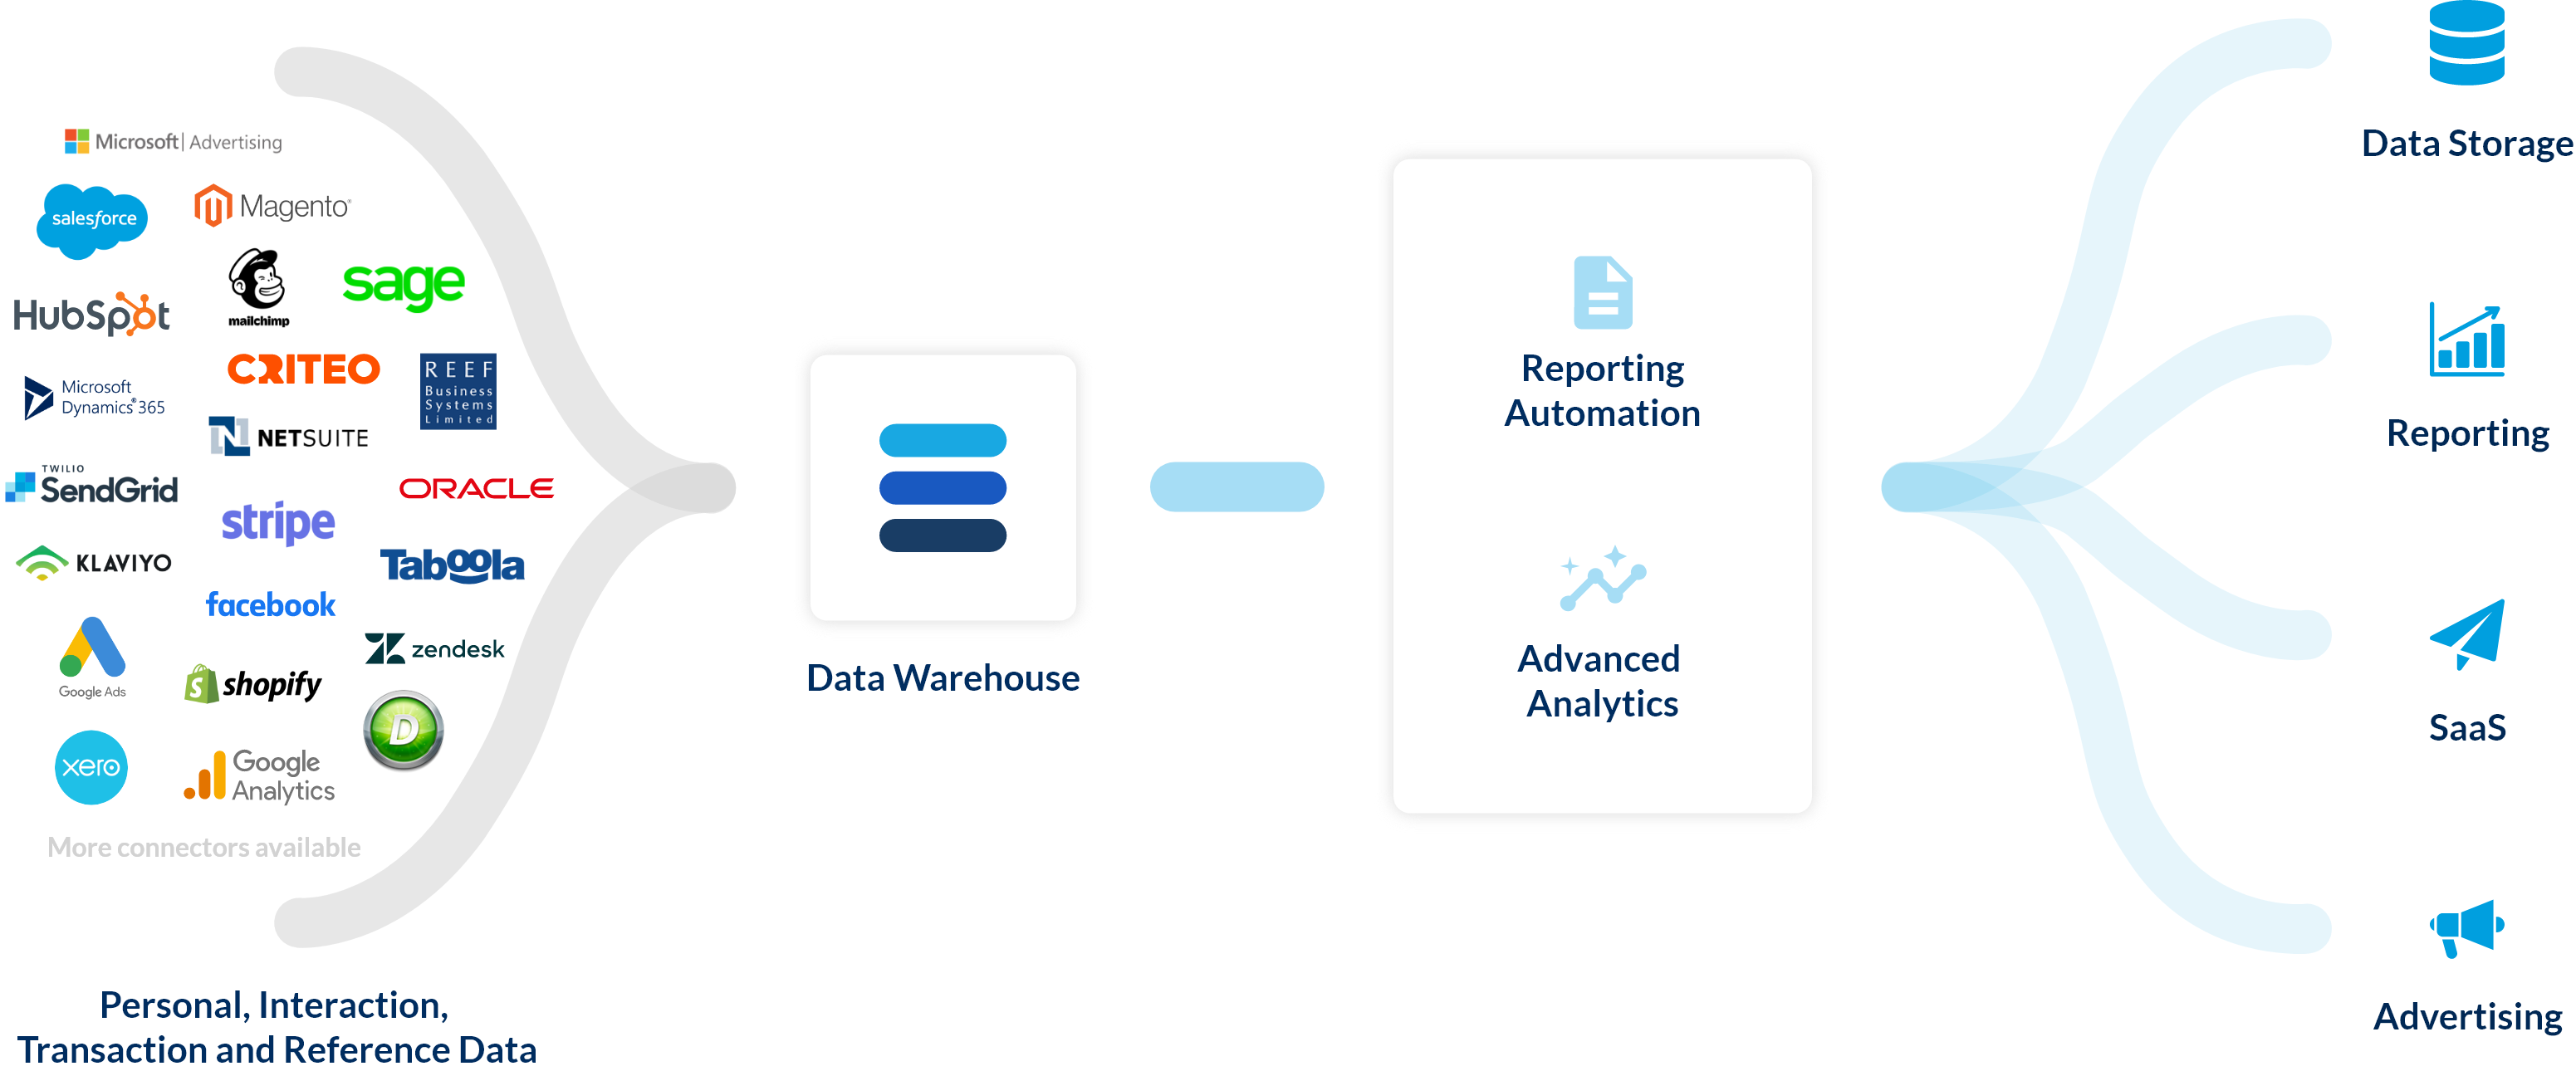 Overview of The Data Refinery. Data ingest with personal data, transactions, interactions and reference data into Data Warehouse, making Reporting Automation and Advanced Analytics available. Outputs sent to data destinations including ad platforms, SaaS products, reporting tools, data storage